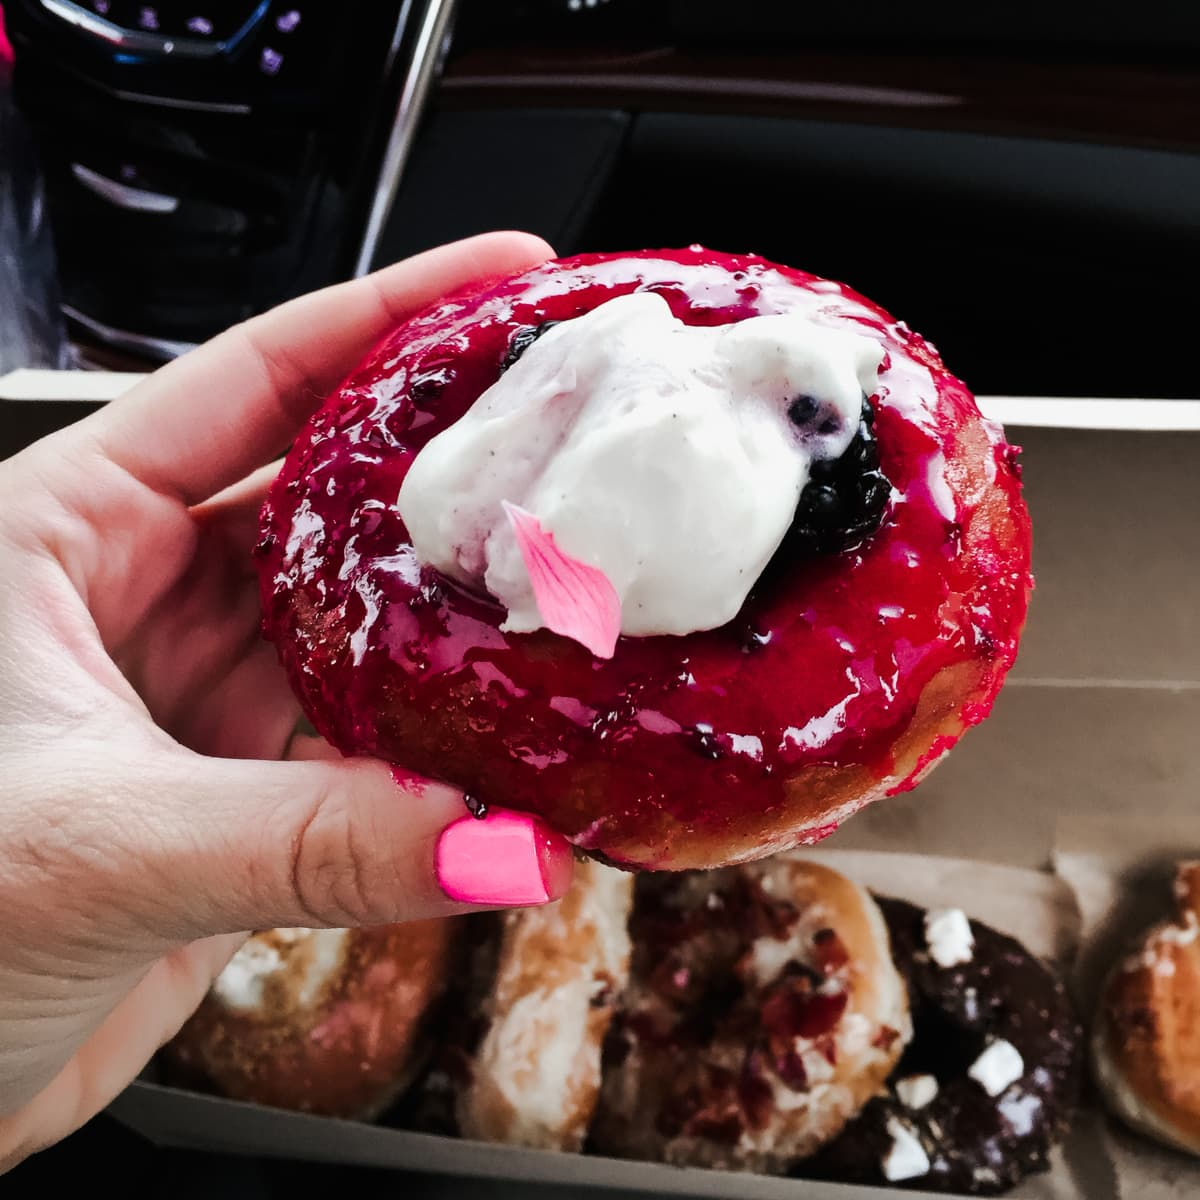 Best donuts in all of Orange County - sidecar donuts